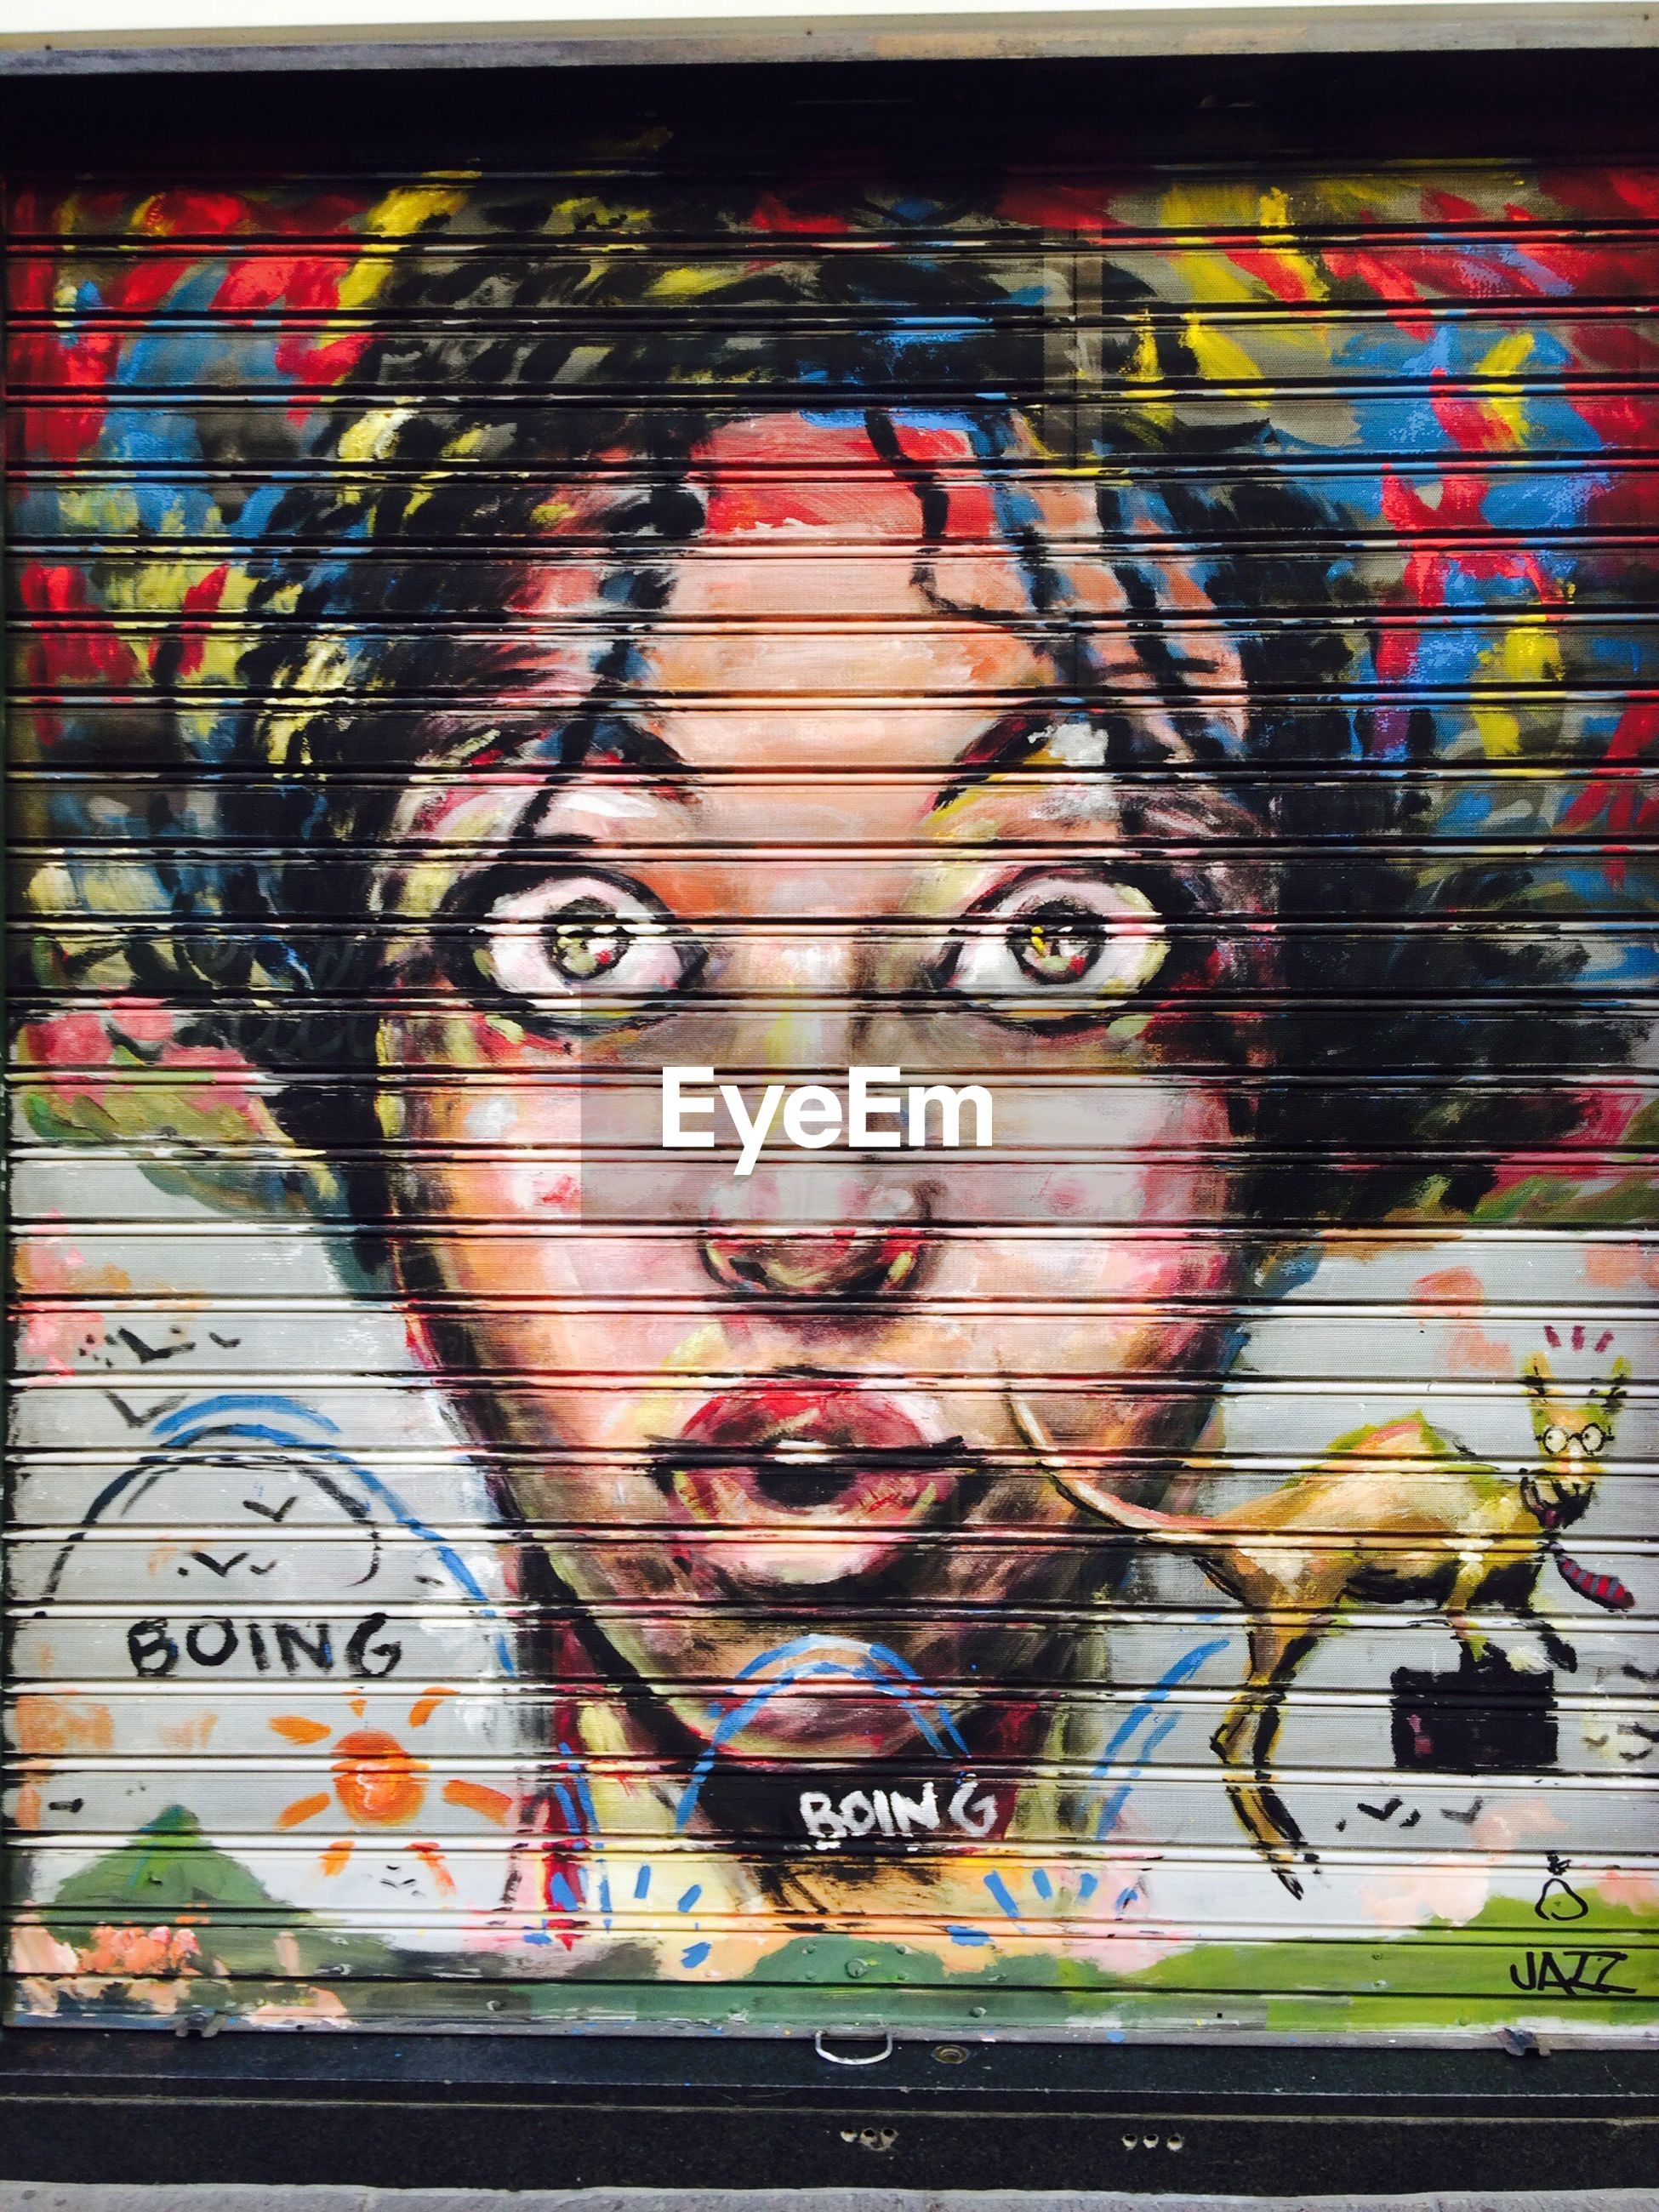 graffiti, multi colored, art, art and craft, creativity, text, indoors, wall - building feature, western script, street art, backgrounds, full frame, colorful, vandalism, communication, painting, pattern, human representation, design, wall